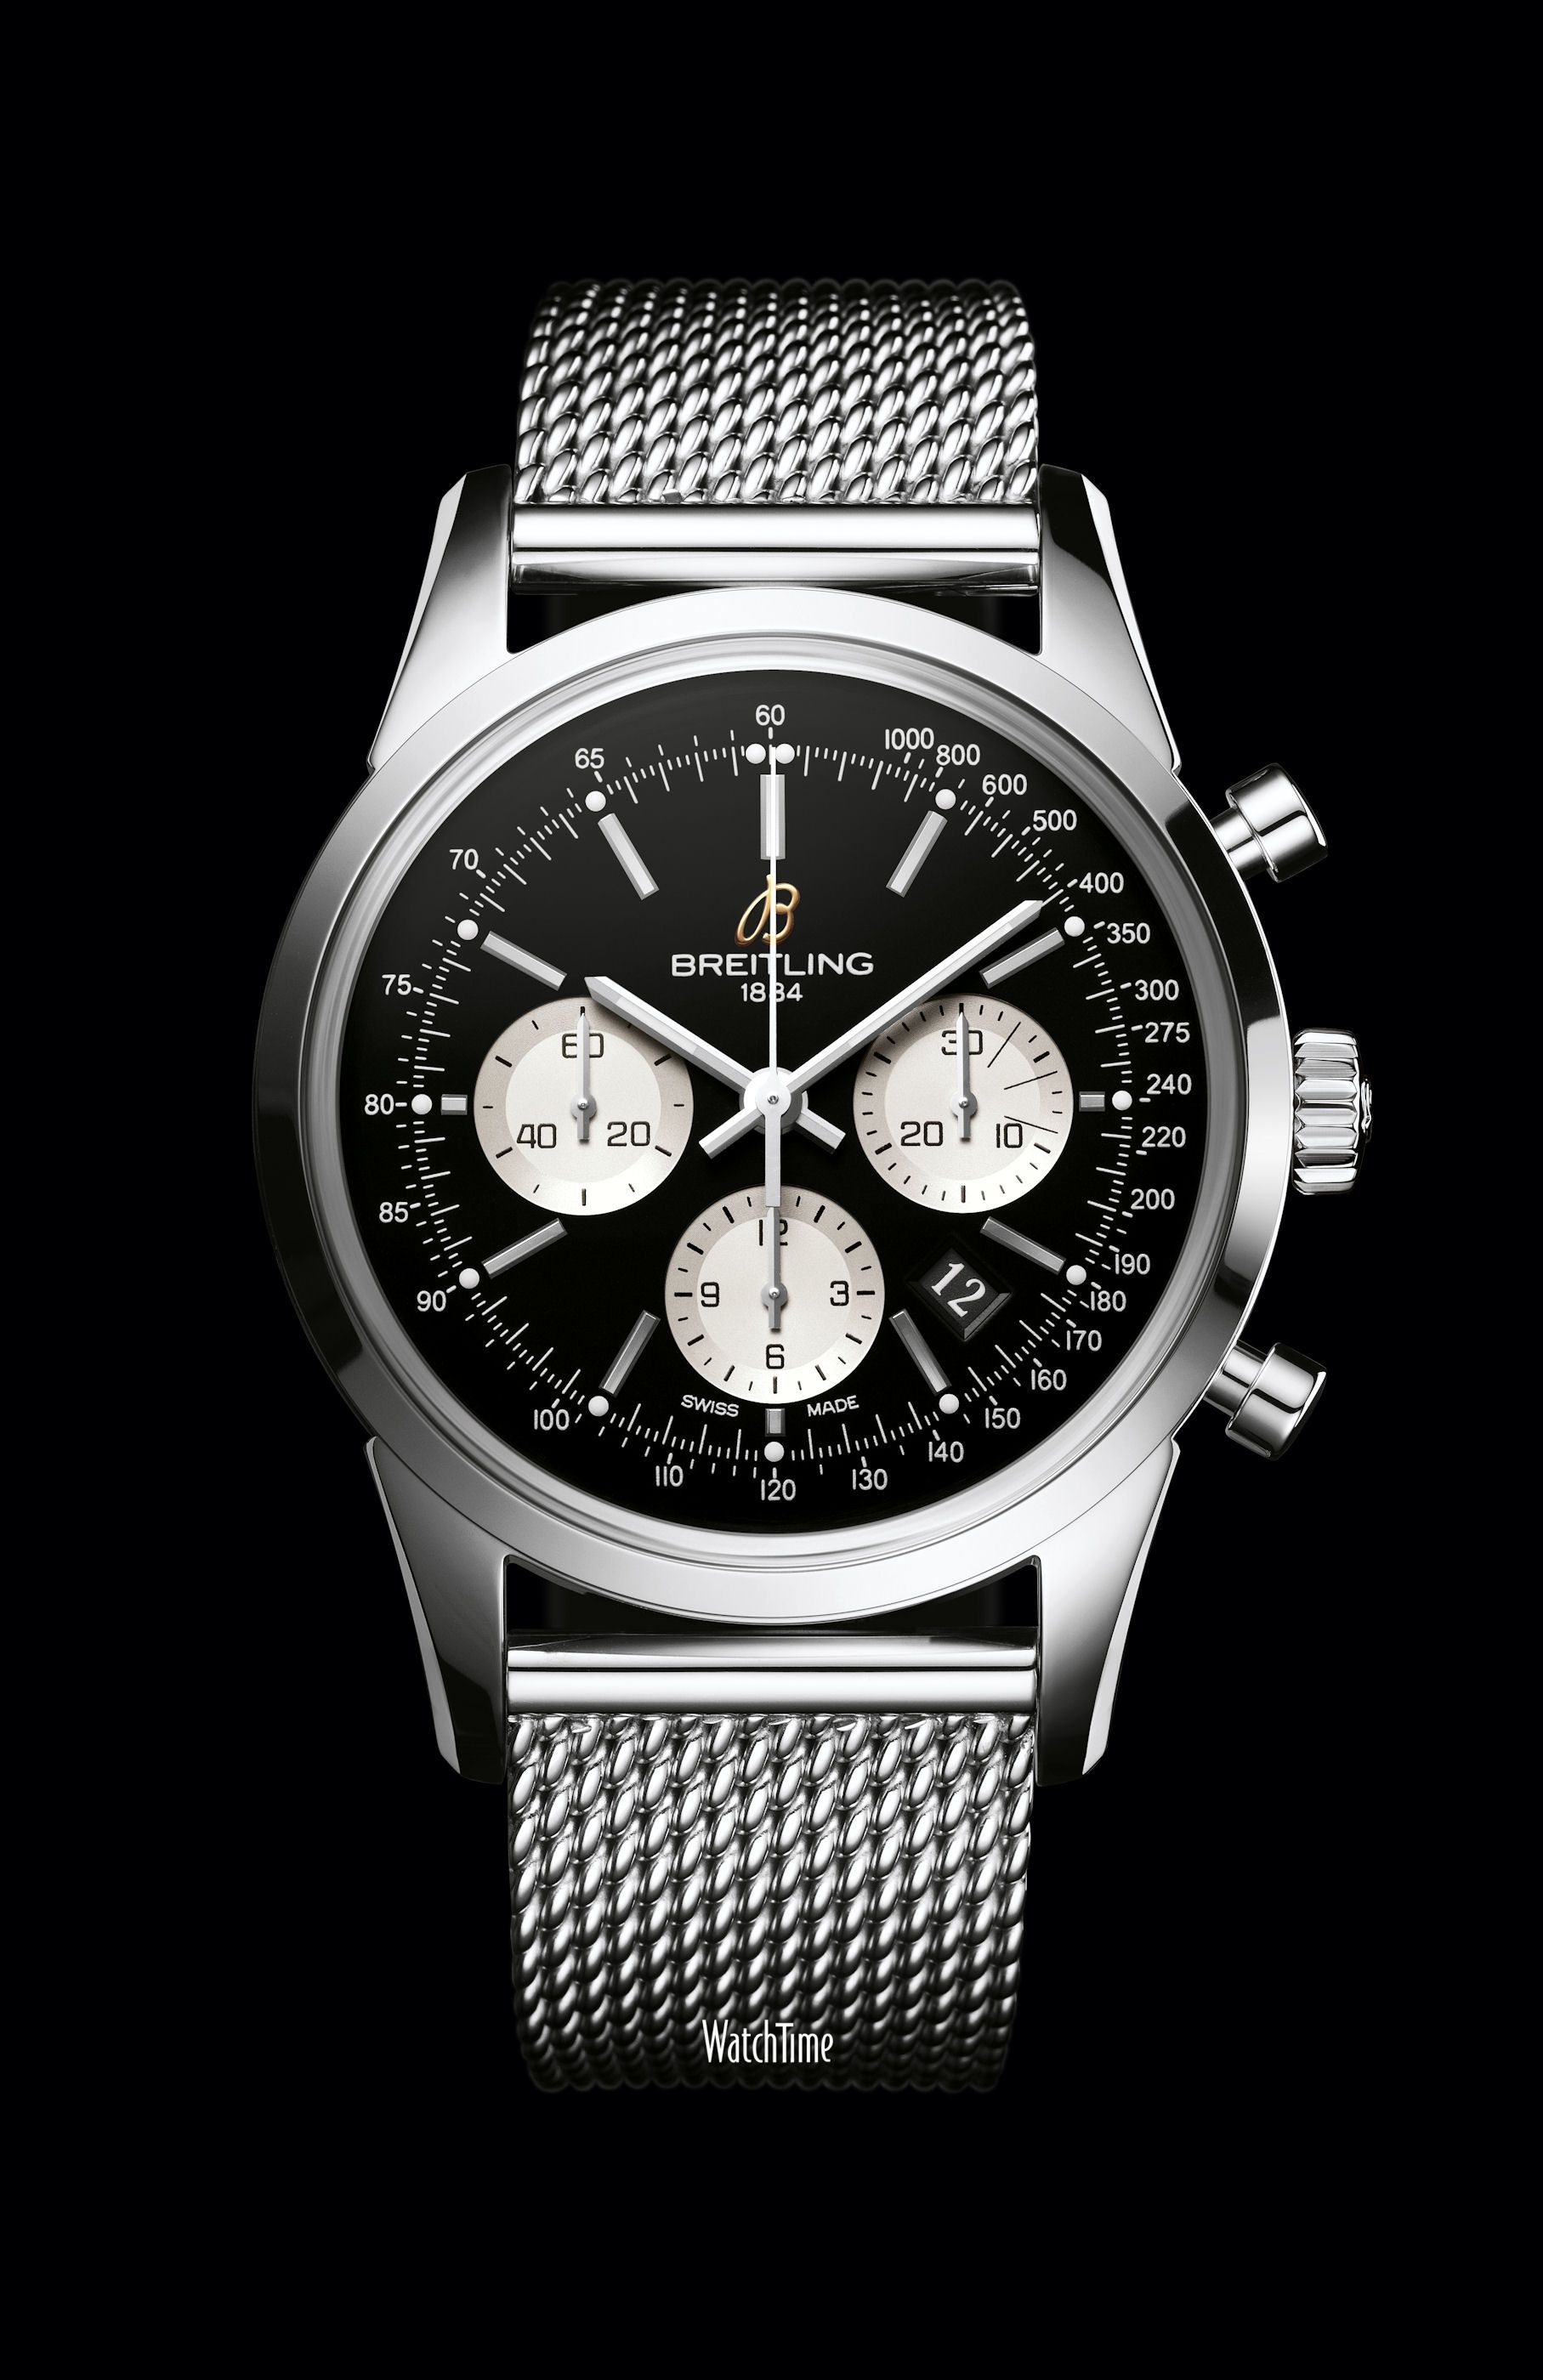 Breitling  the Transocean Chronograph Limited Edition  watches  clocks   watch  clock  time  lifestyle  men  fashion df7ba86d26